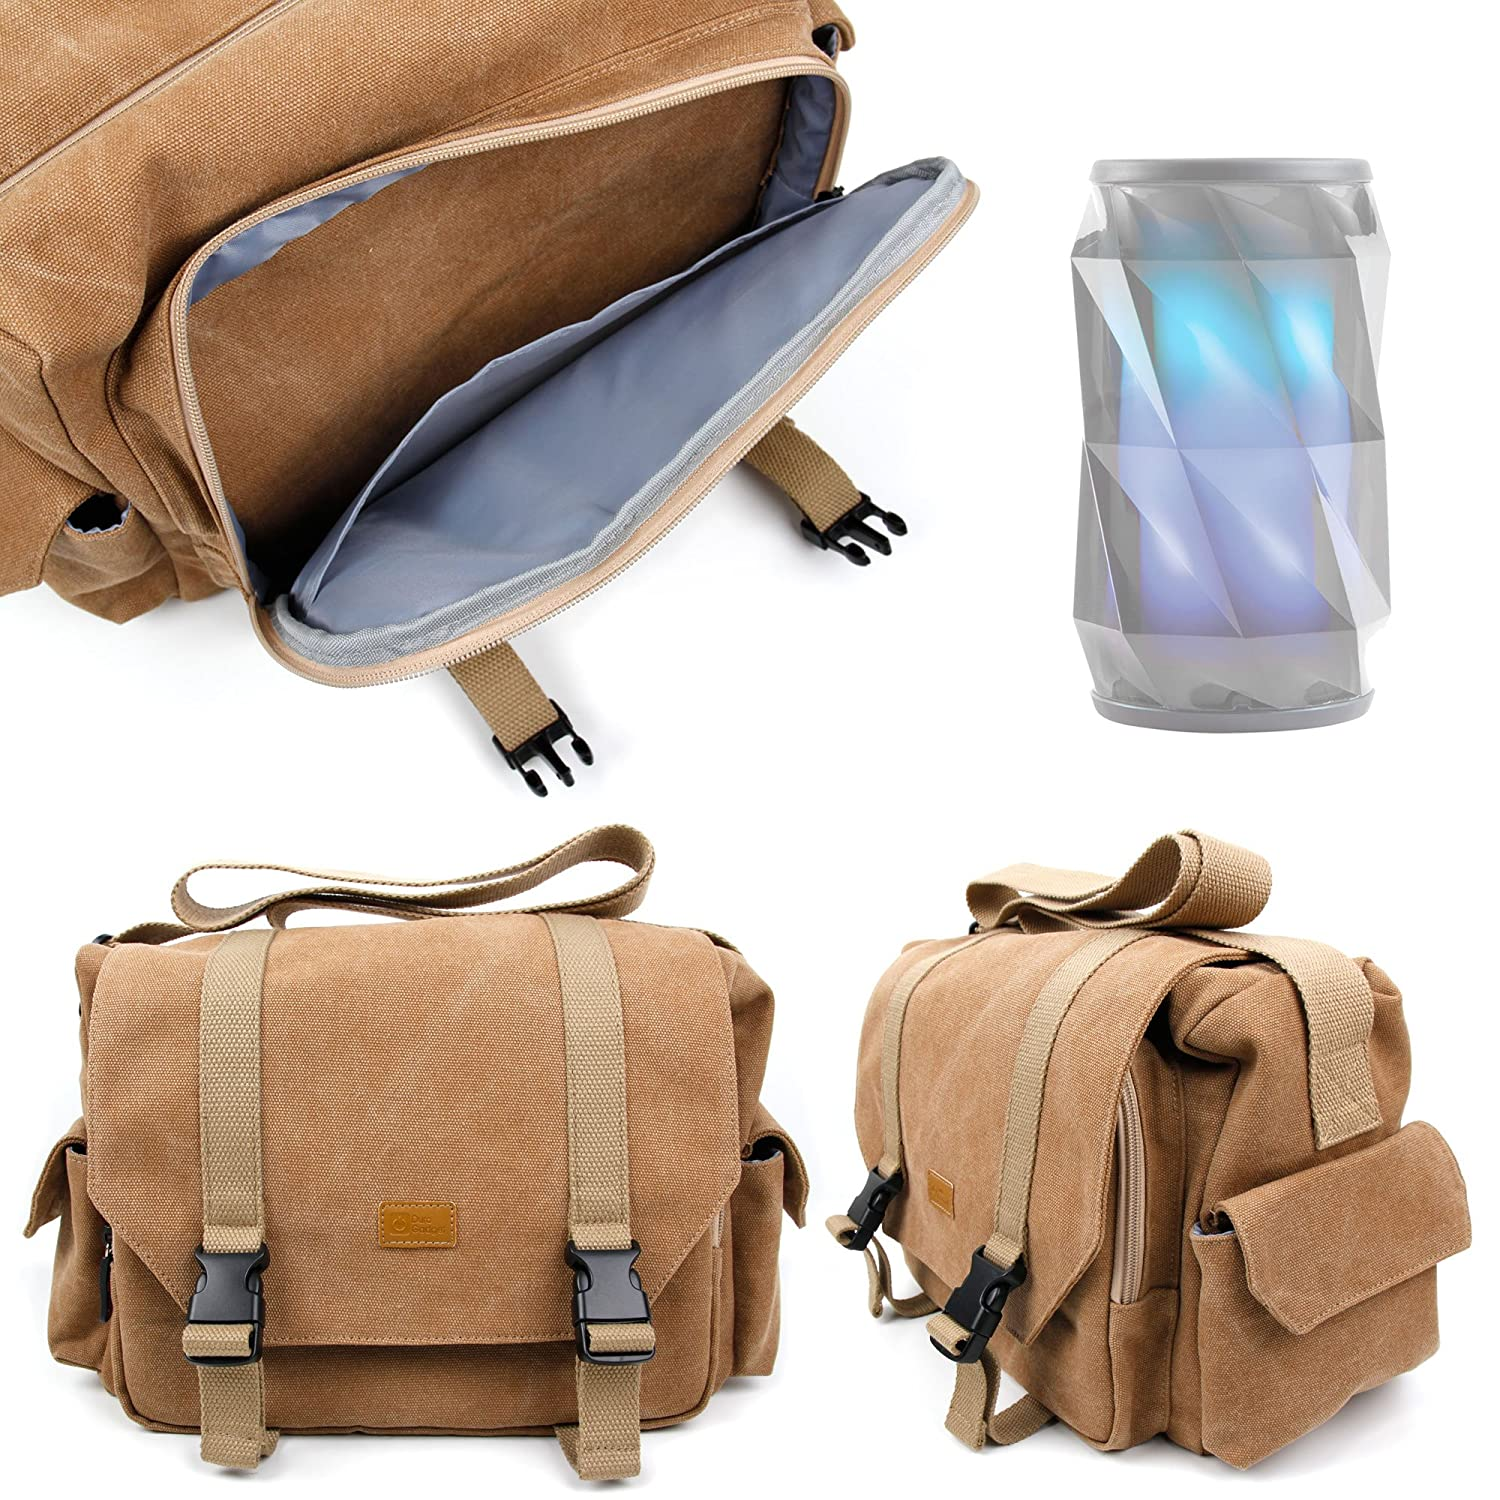 DURAGADGET tan-brown Large SizedキャンバスCarry Bag for新しいiHome ibt74色変更Bluetooth充電式スピーカー – 複数のポケットが&カスタマイズ可能な内部コンパートメント   B018VYXNNC